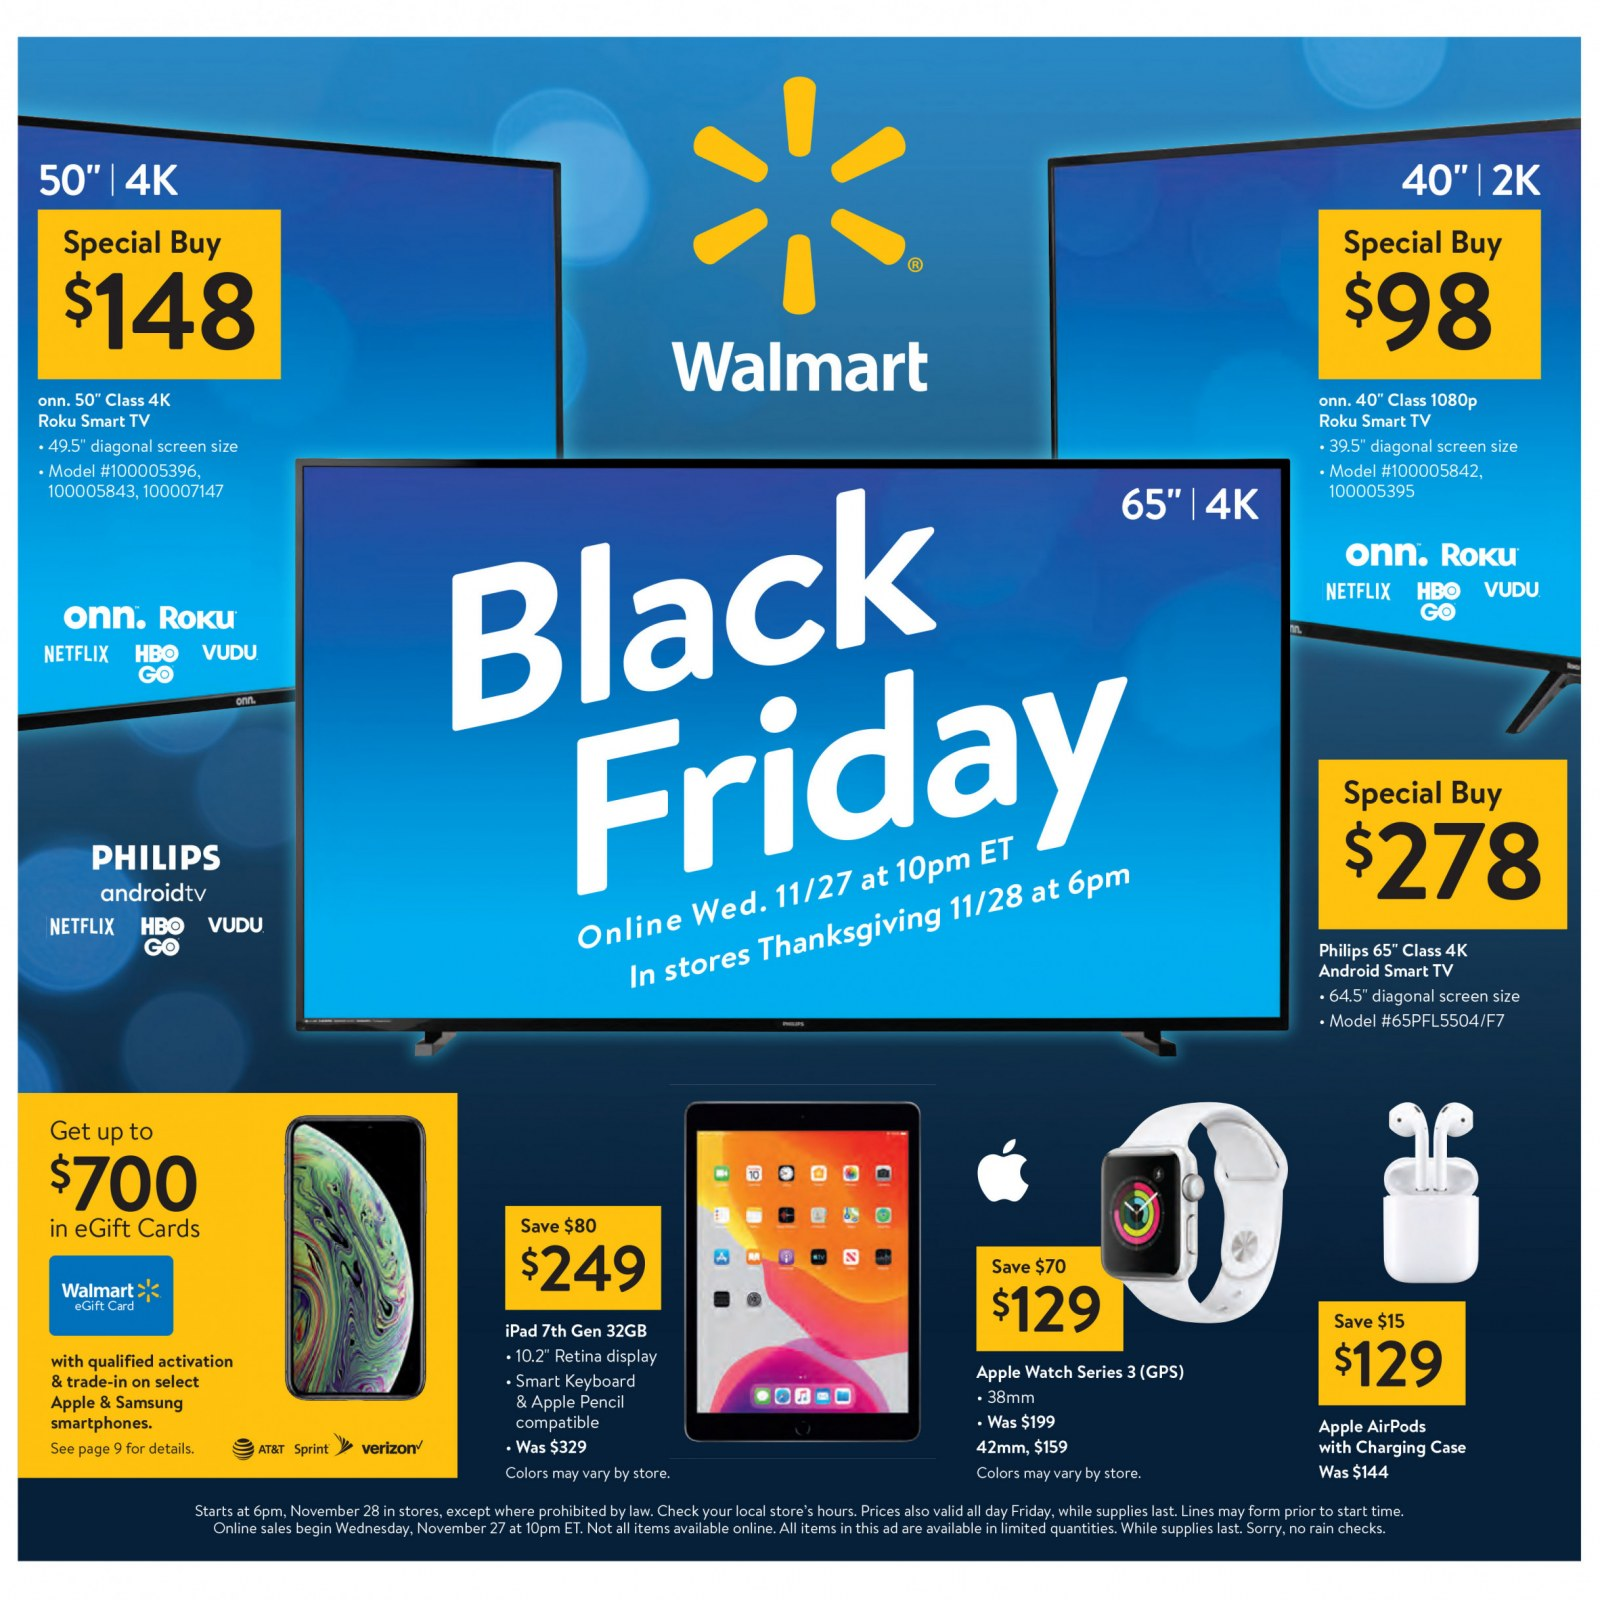 Walmart Black Friday Ad 2019 Deals On Apple Watch Series 3